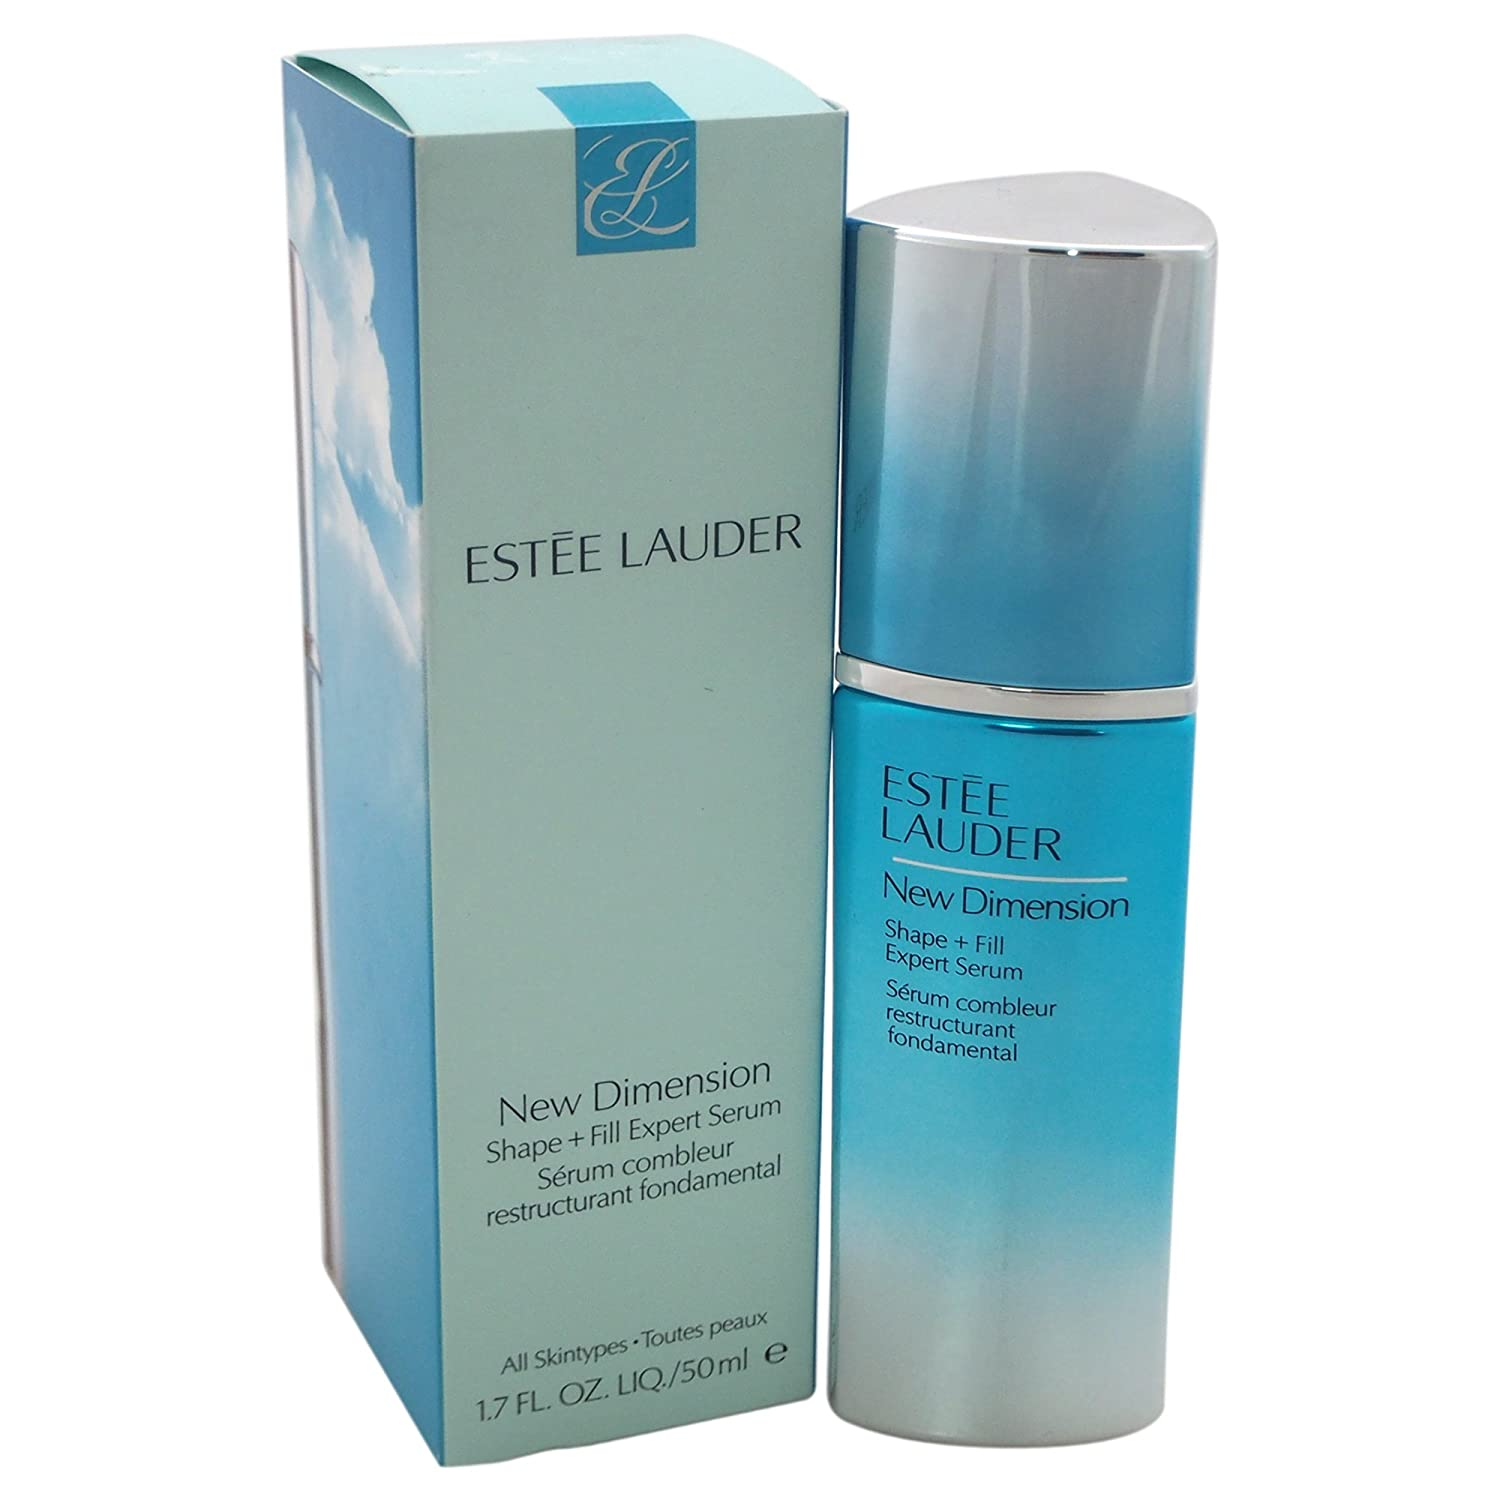 Estee Lauder New Dimension Shape + Fill Expert Serum 50ml/1.7oz C-EL-689-50 EST00184